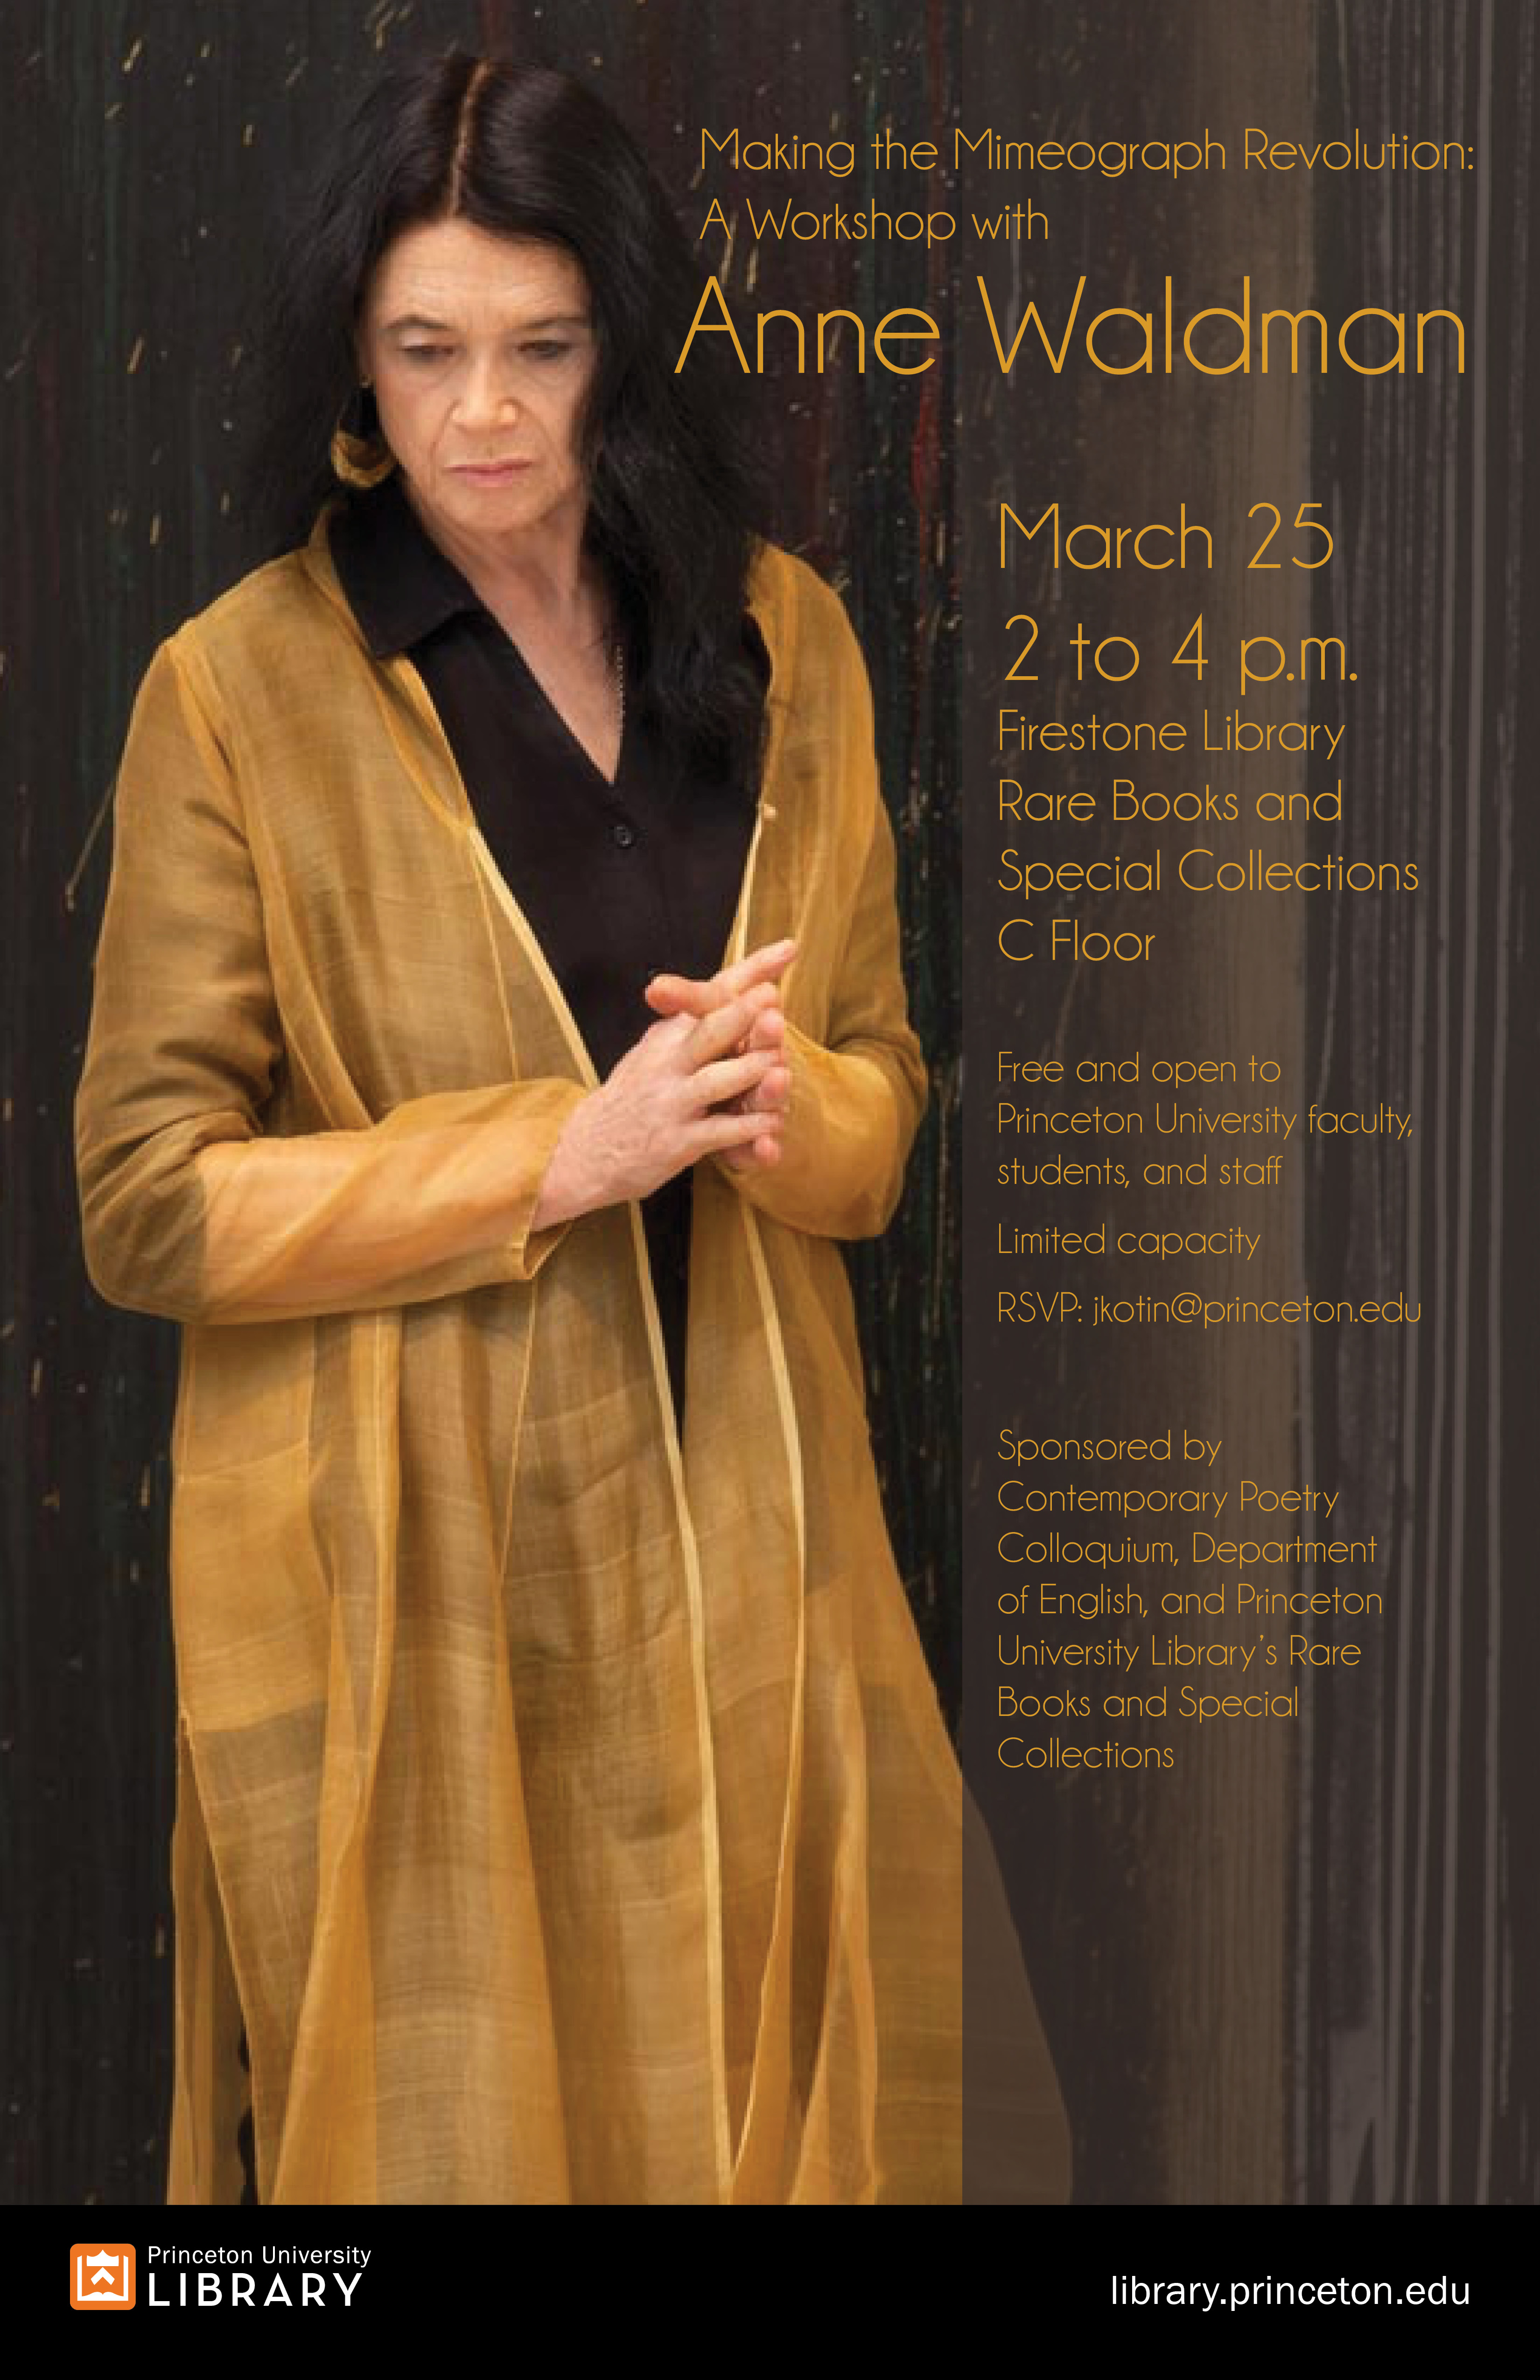 Anne Waldman workshop poster